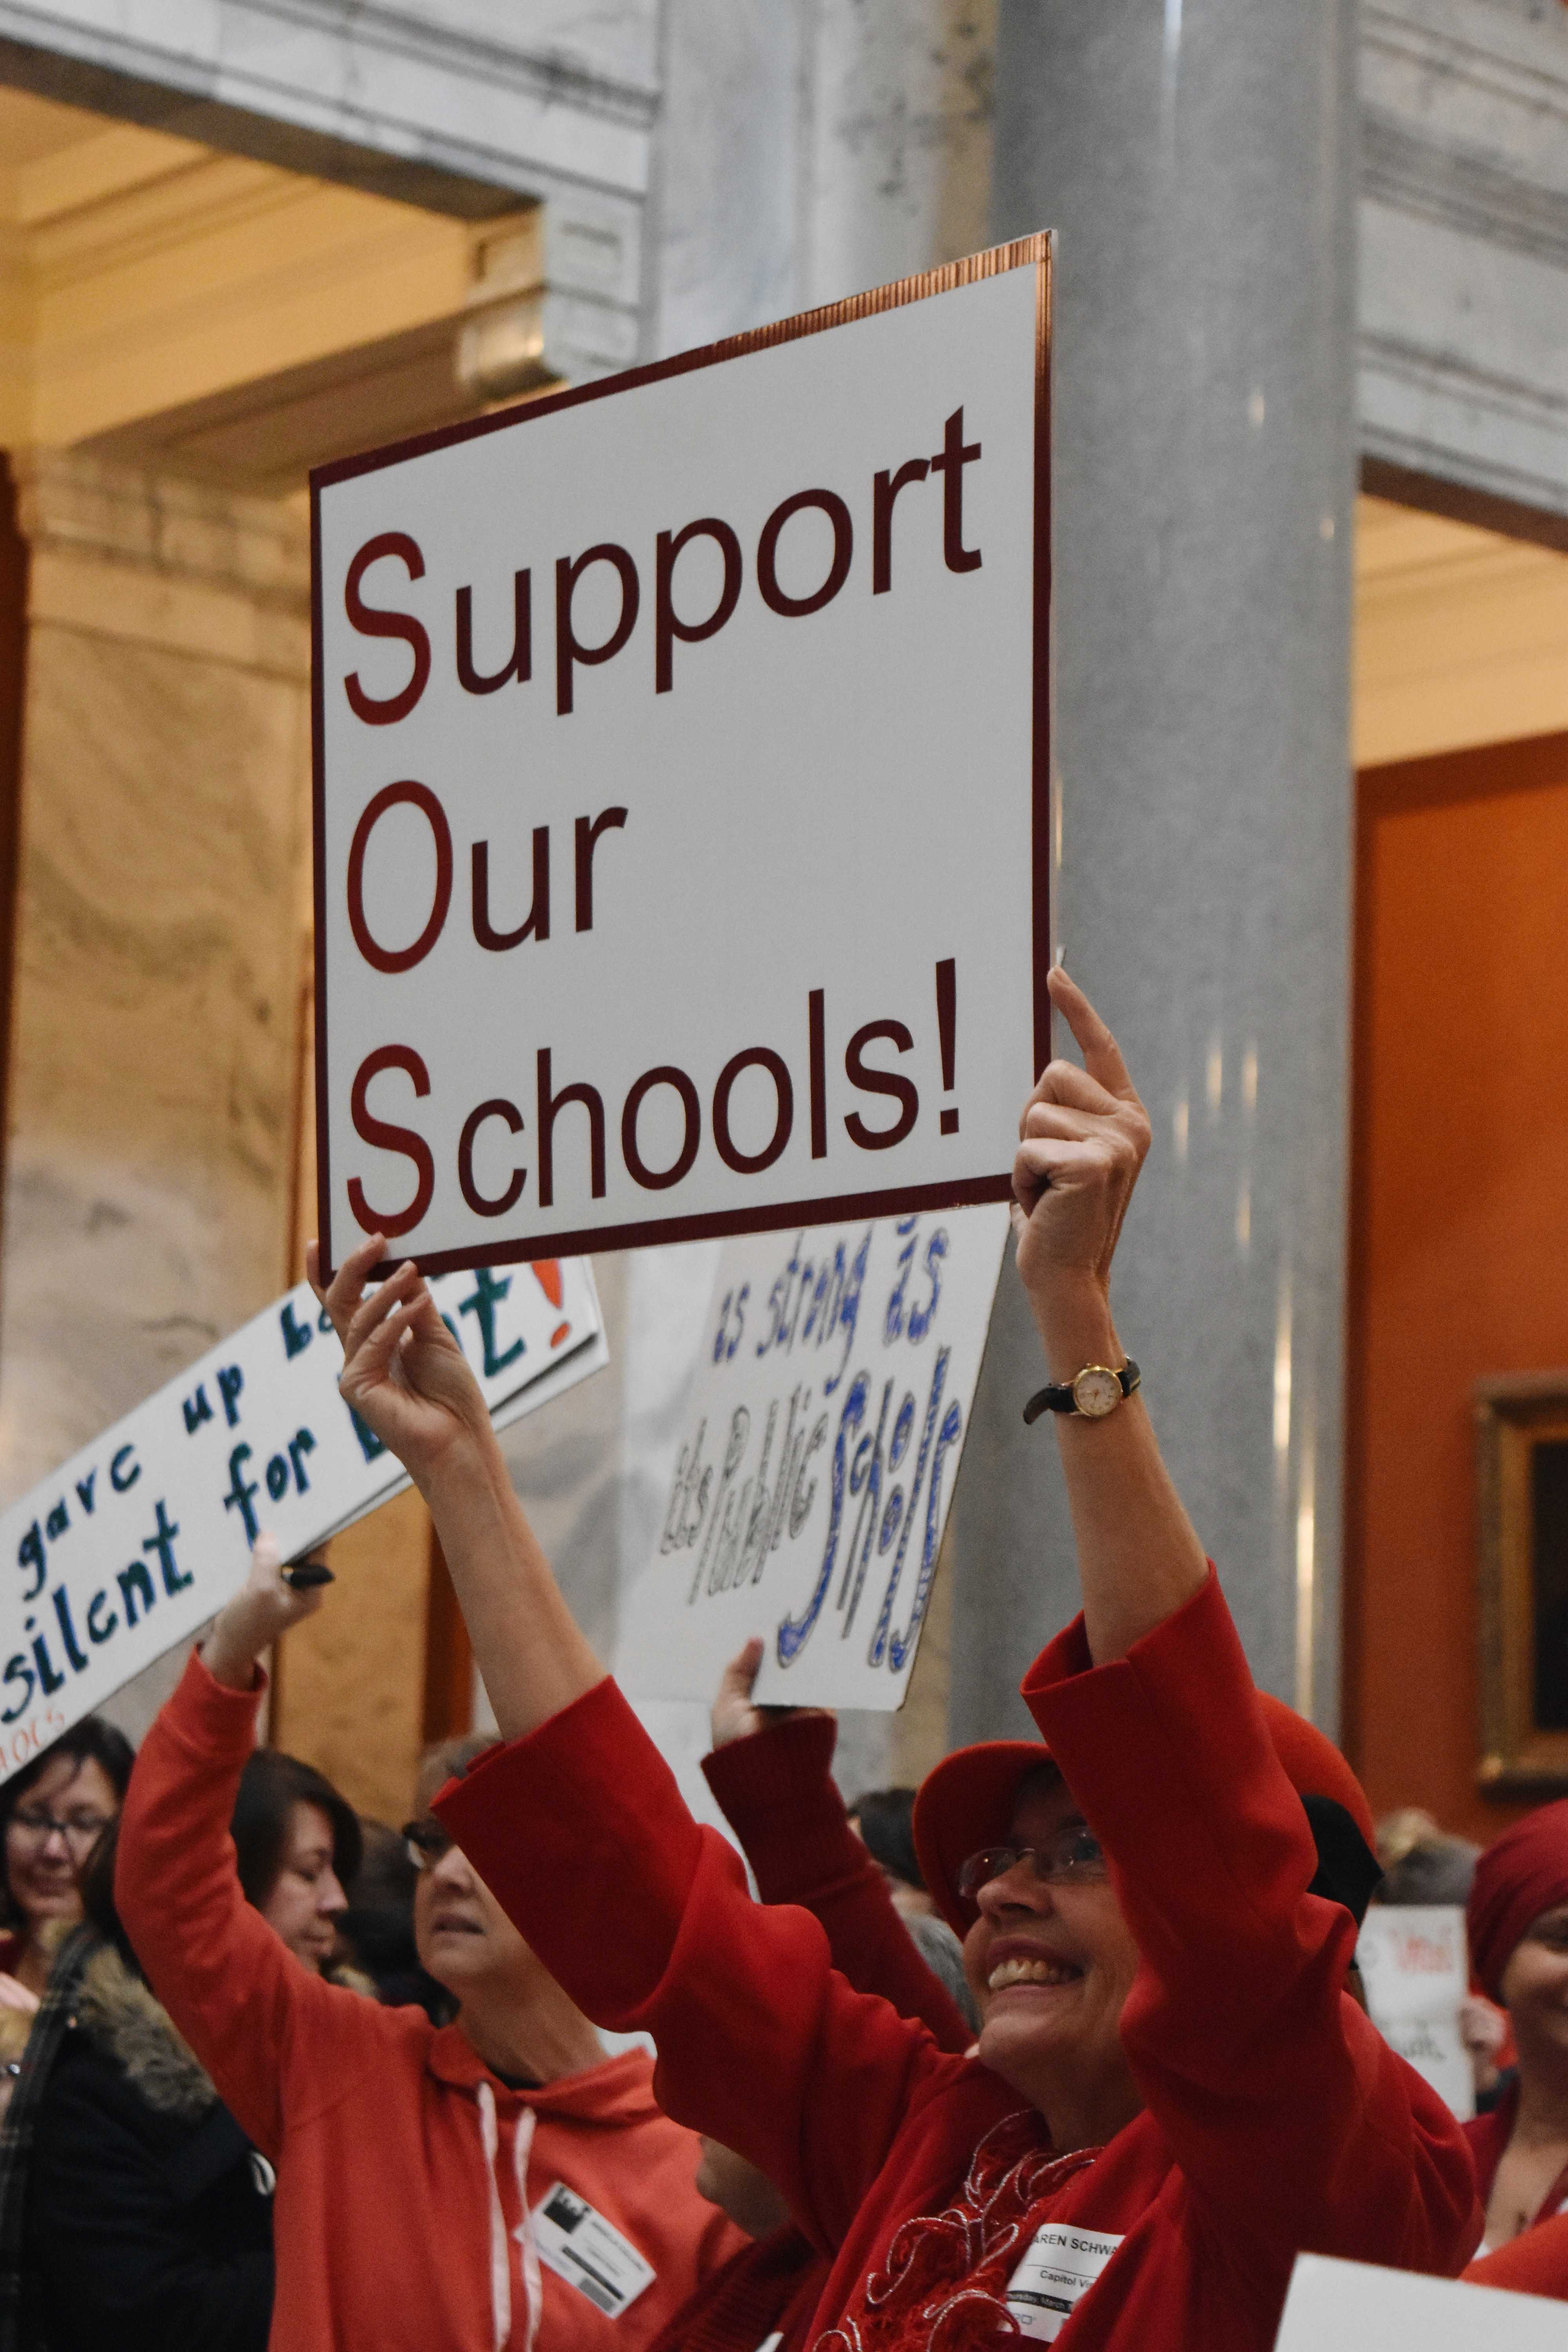 Both+current+educators+and+retired+teachers+from+all+over+the+Commonwealth+came+to+Frankfort+today+to+send+their+unified+message%3A+%22we%27re+not+gonna+take+it.%22+Photo+by+Piper+Hansen.